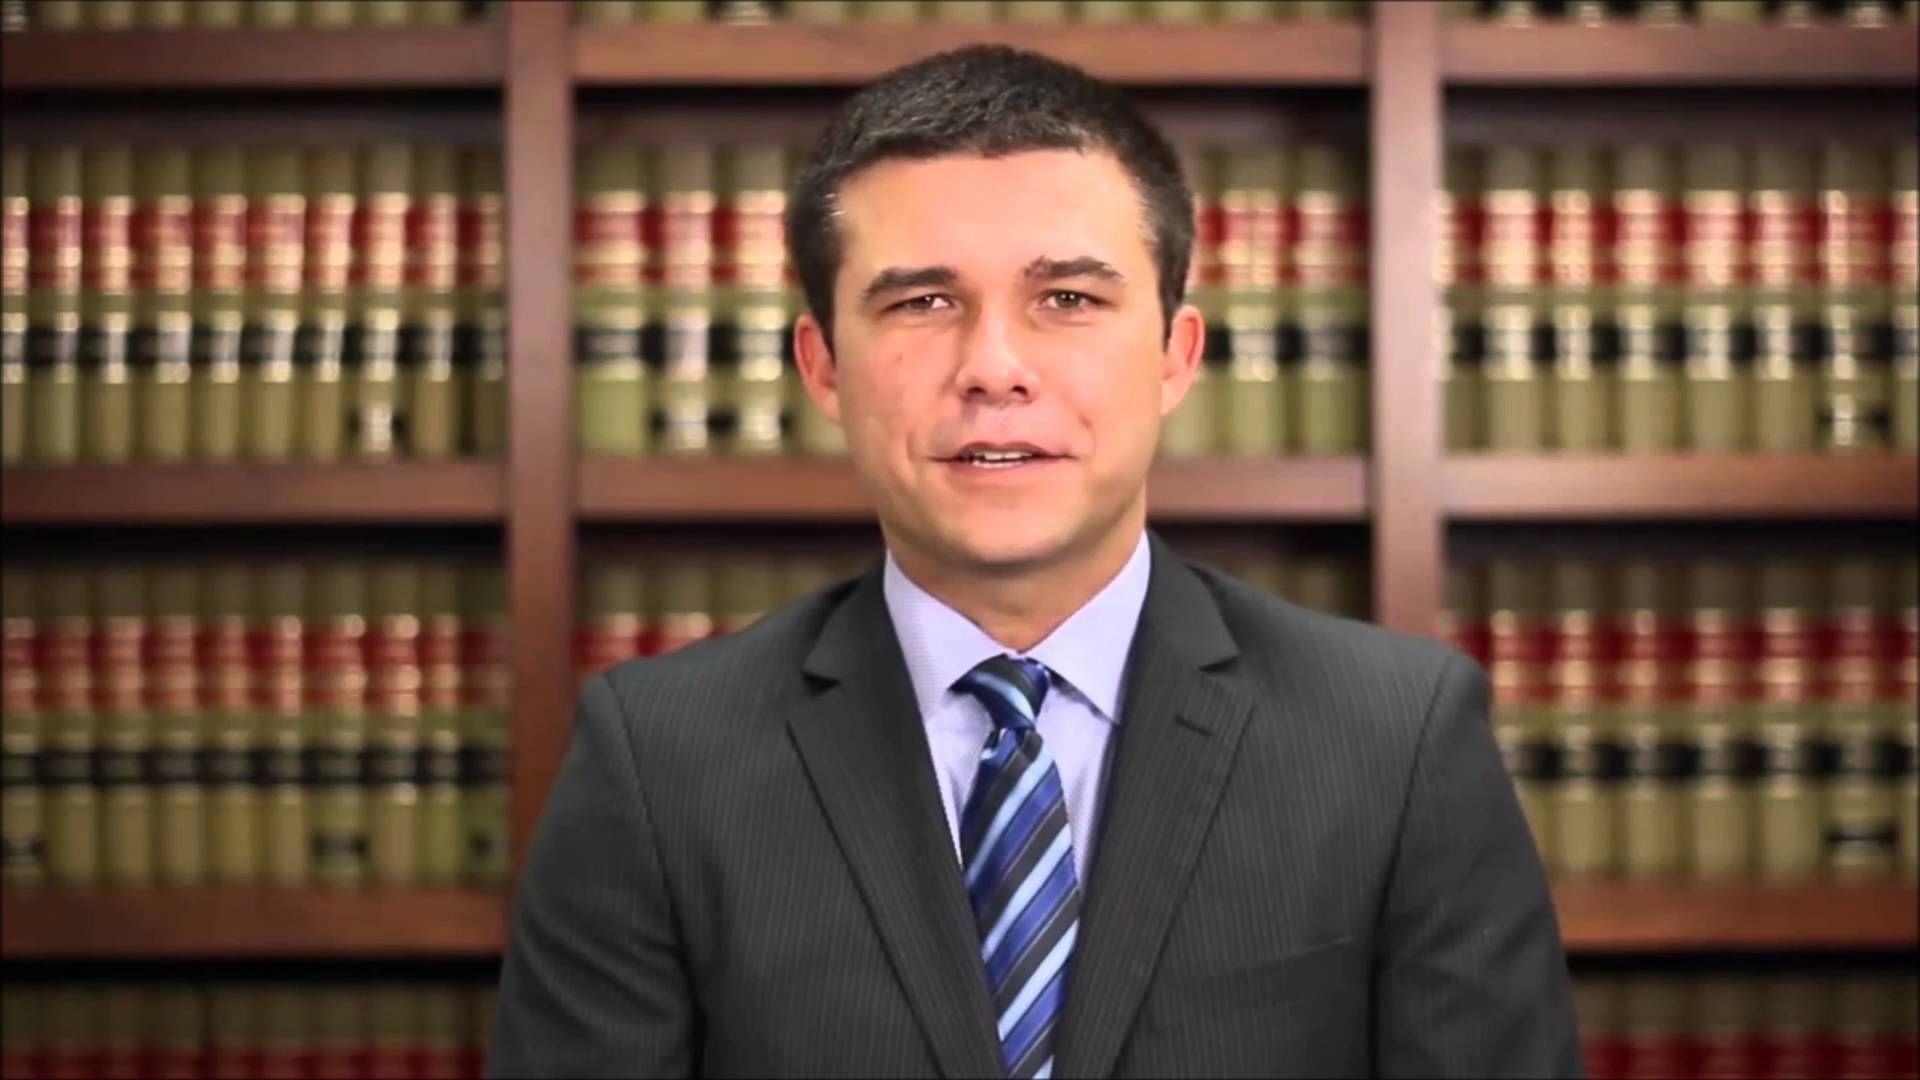 https://www.youtube.com/channel/UCbU7c8UHr4IROE721X62N5Q/about   The law firm of James Bell, PC is based in the Dallas Fort Worth Texas area. James Bell and his attorneys can   represent you on cases ranging from: